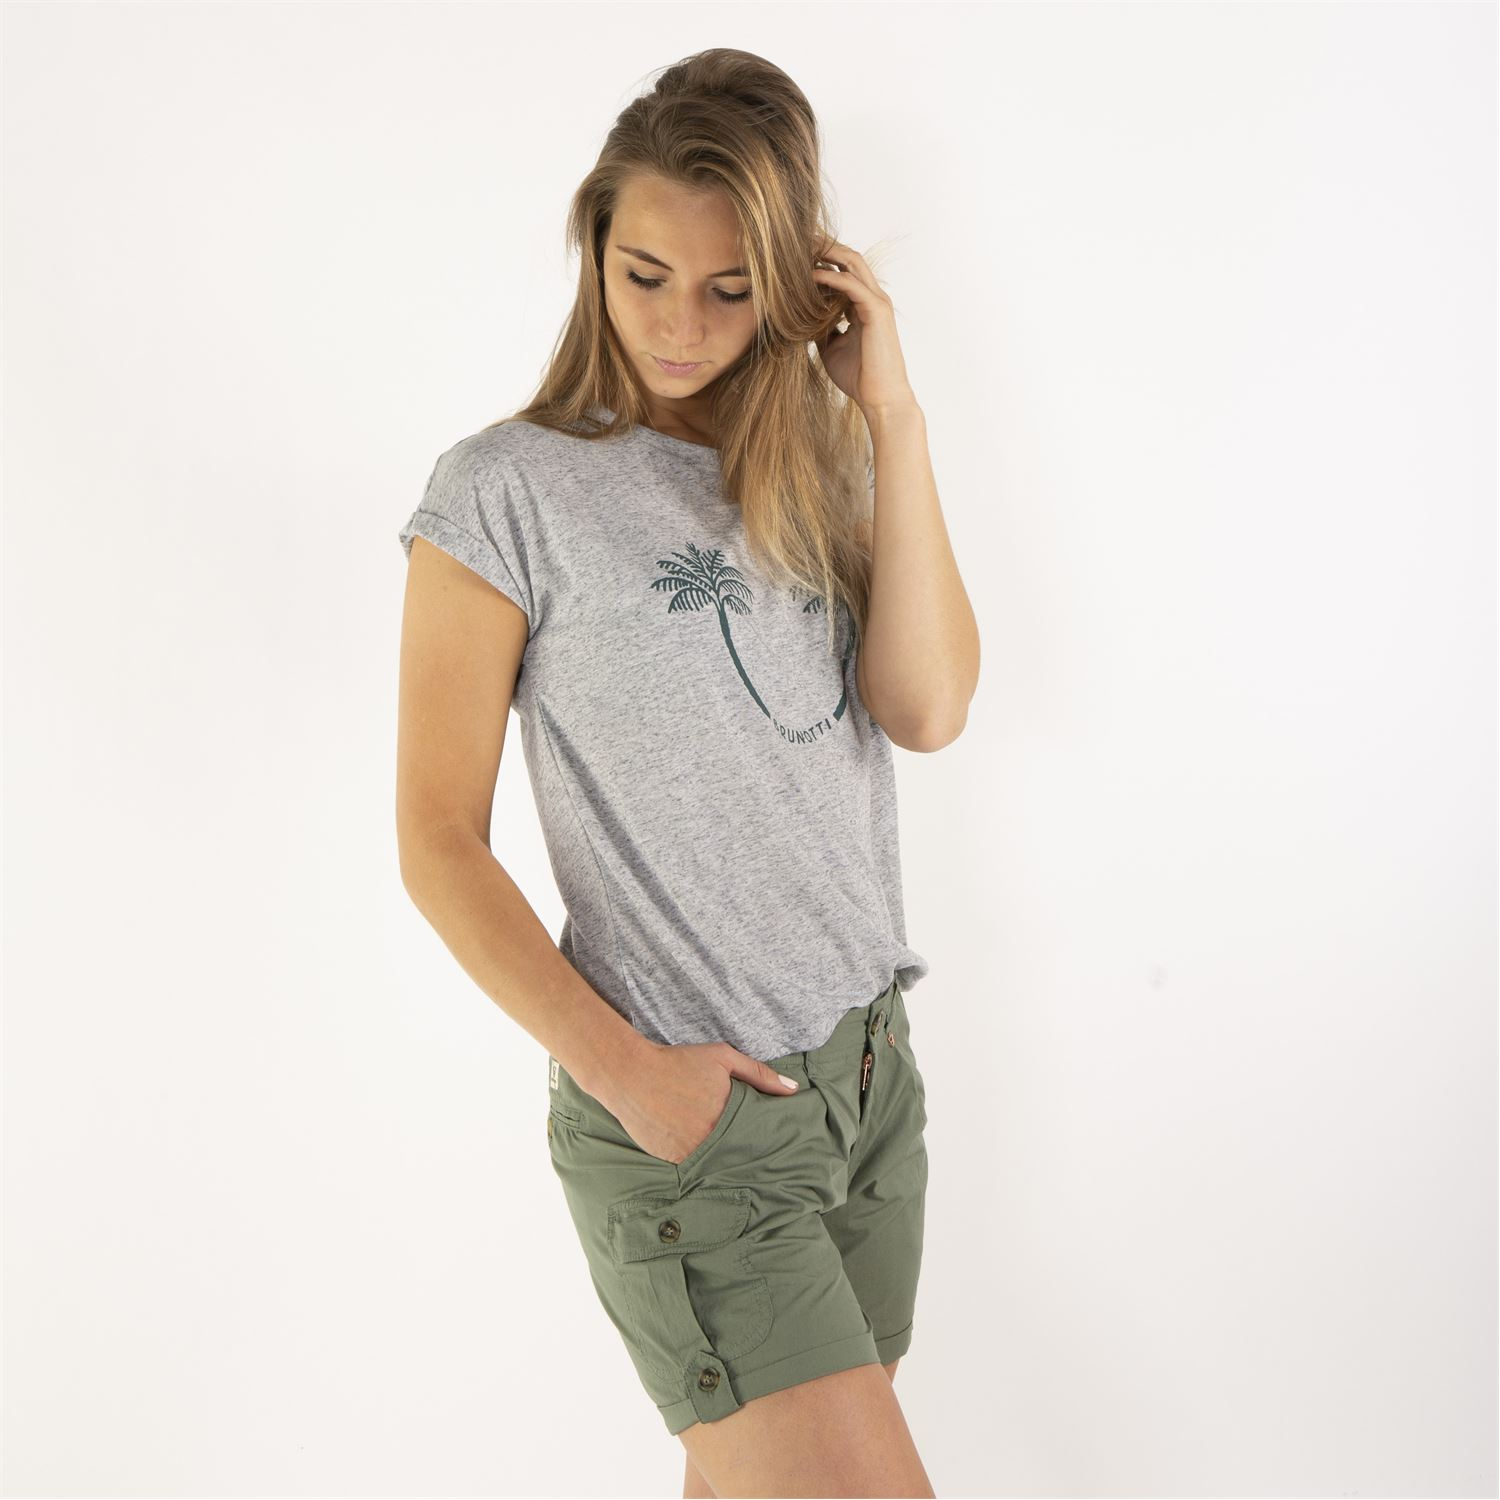 c5a1d622c3881 Brunotti Acacia (grey) - women t-shirts & tops - Brunotti online shop. Our  model is 176 cm tall and wears size M. Sale. Thumb 2 ...